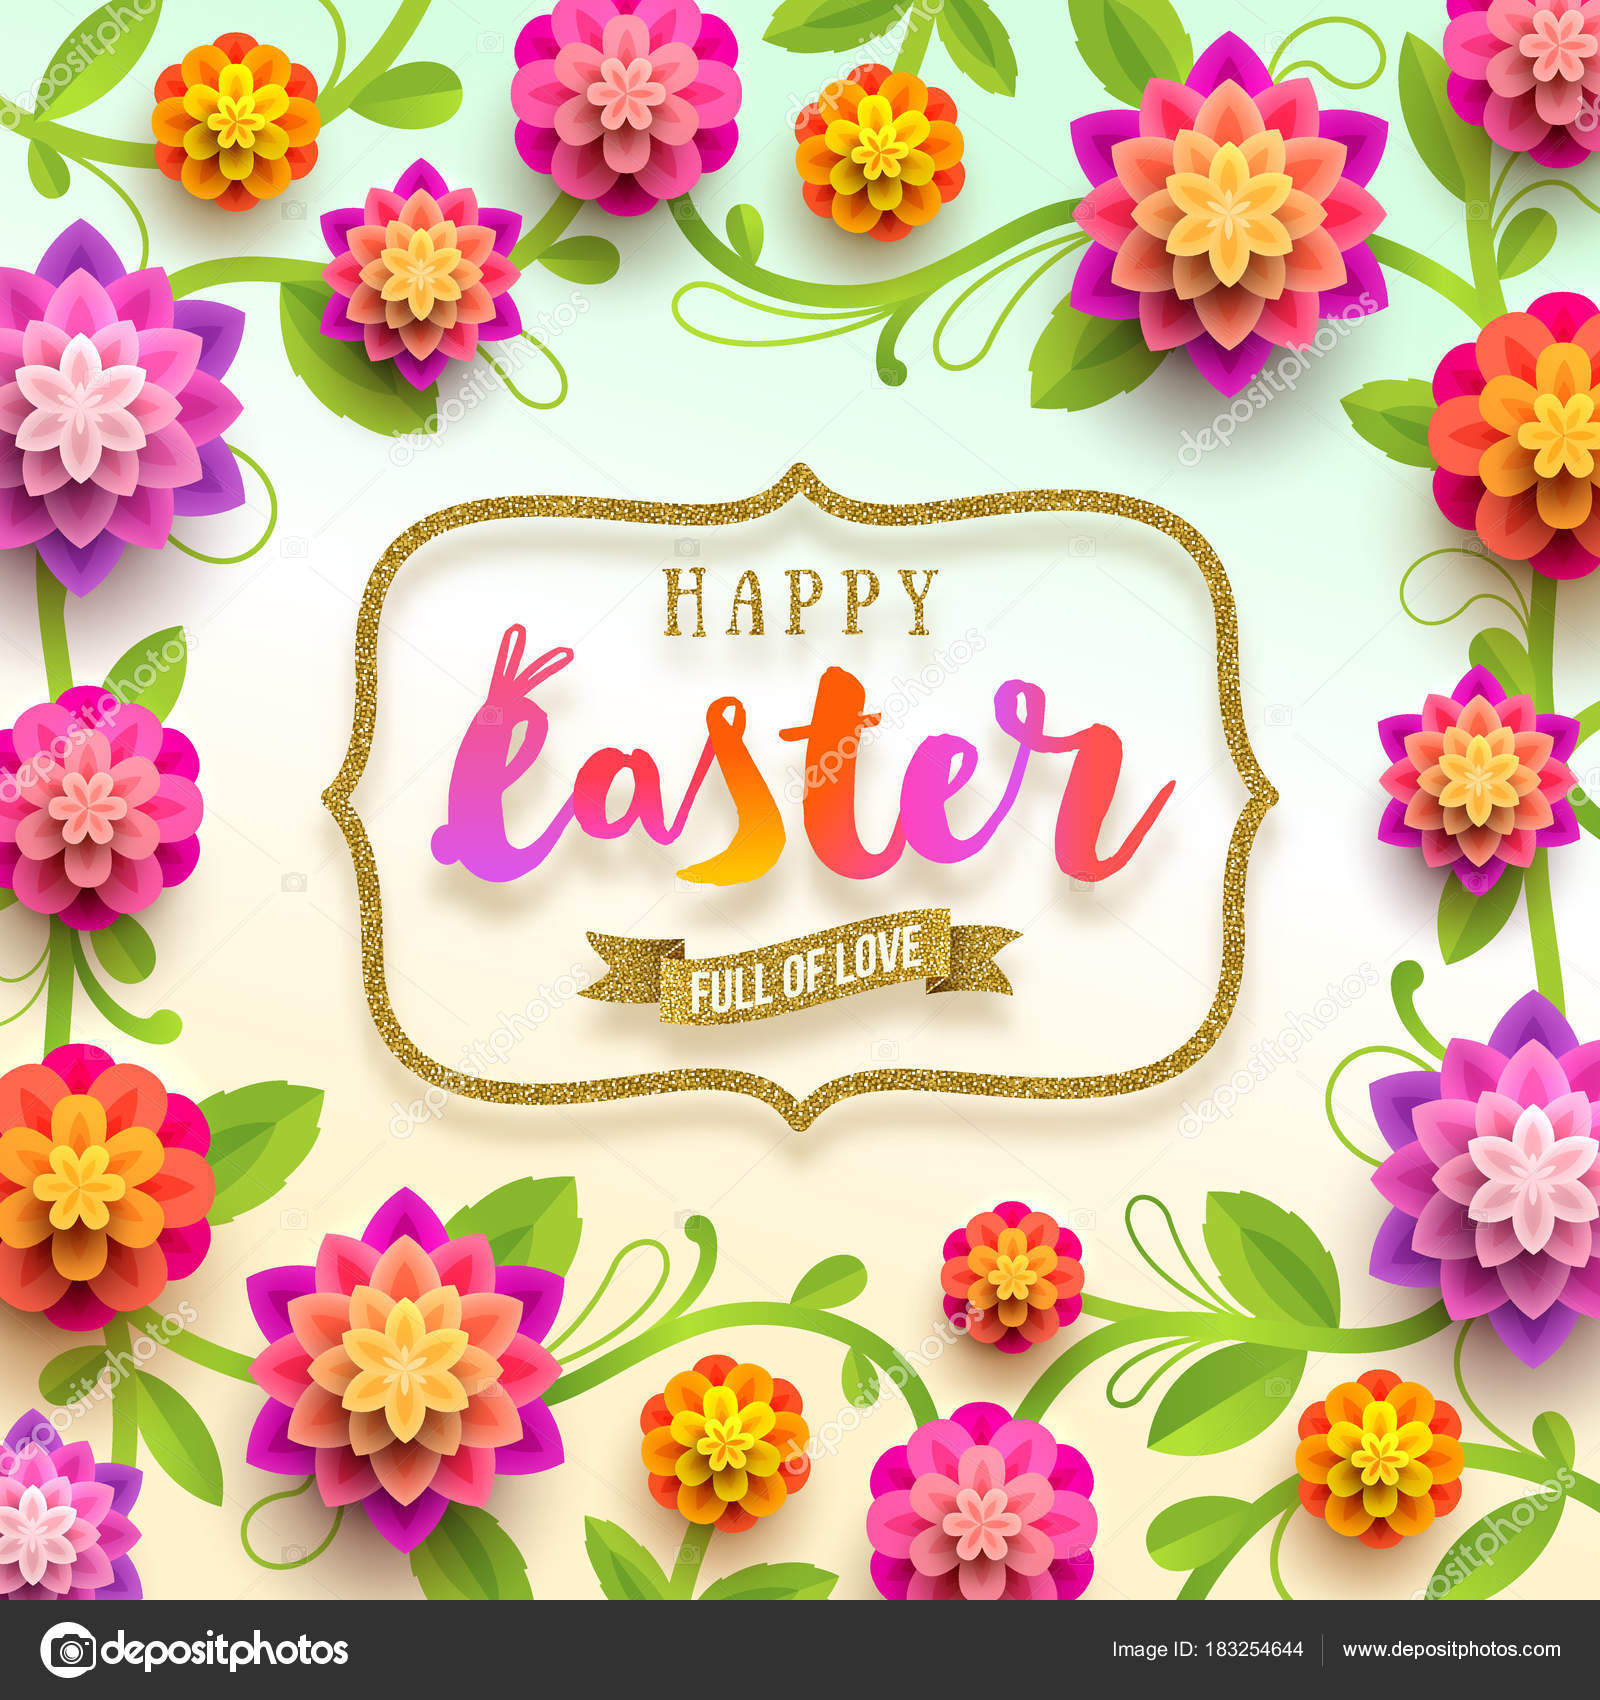 Easter Greeting Card Holiday Greeting In Glitter Gold Frame And